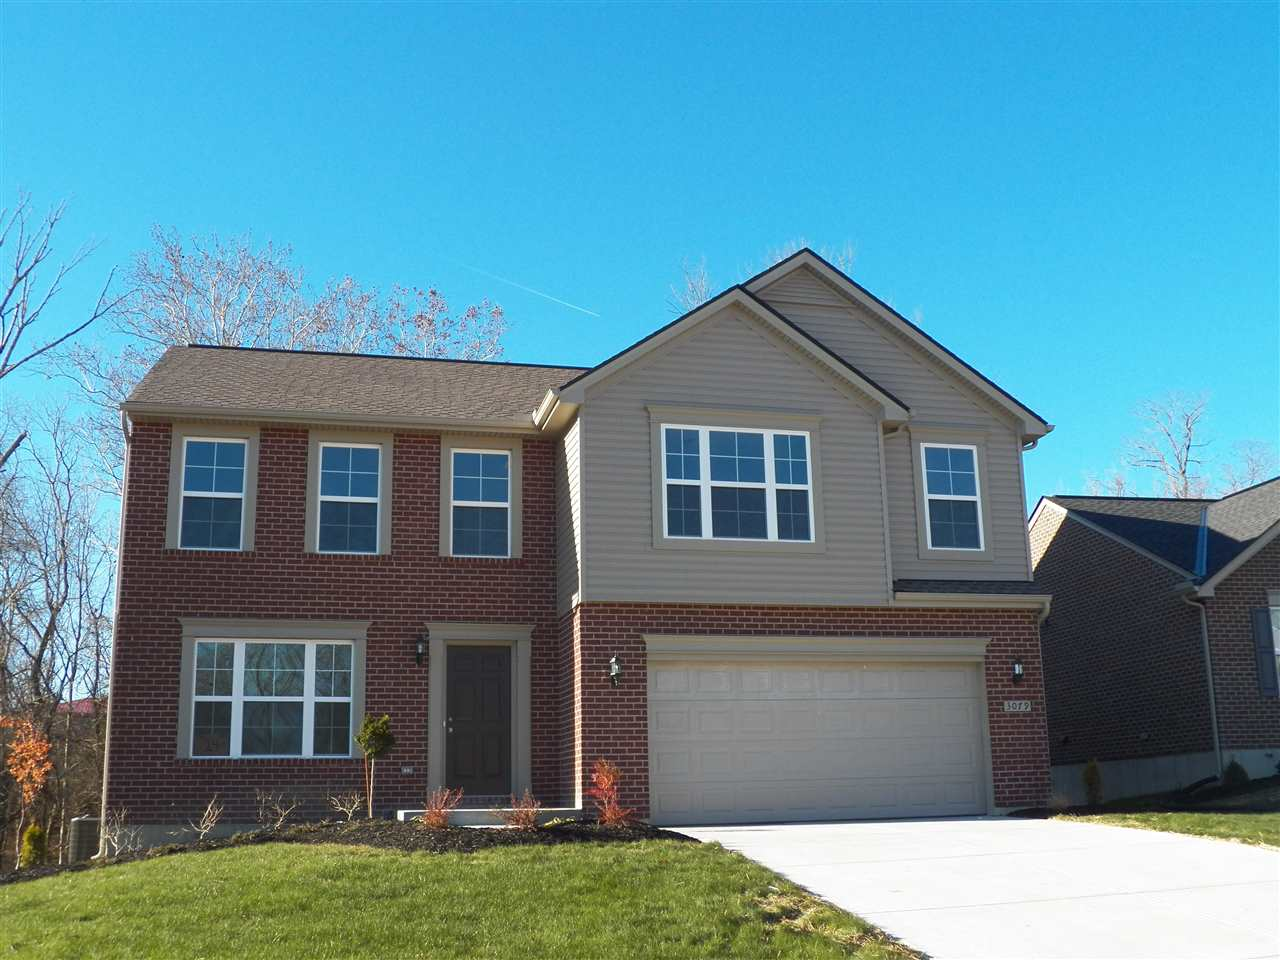 real estate photo 1 for 3079 Silverbell Way, 24 AL Independence, KY 41051